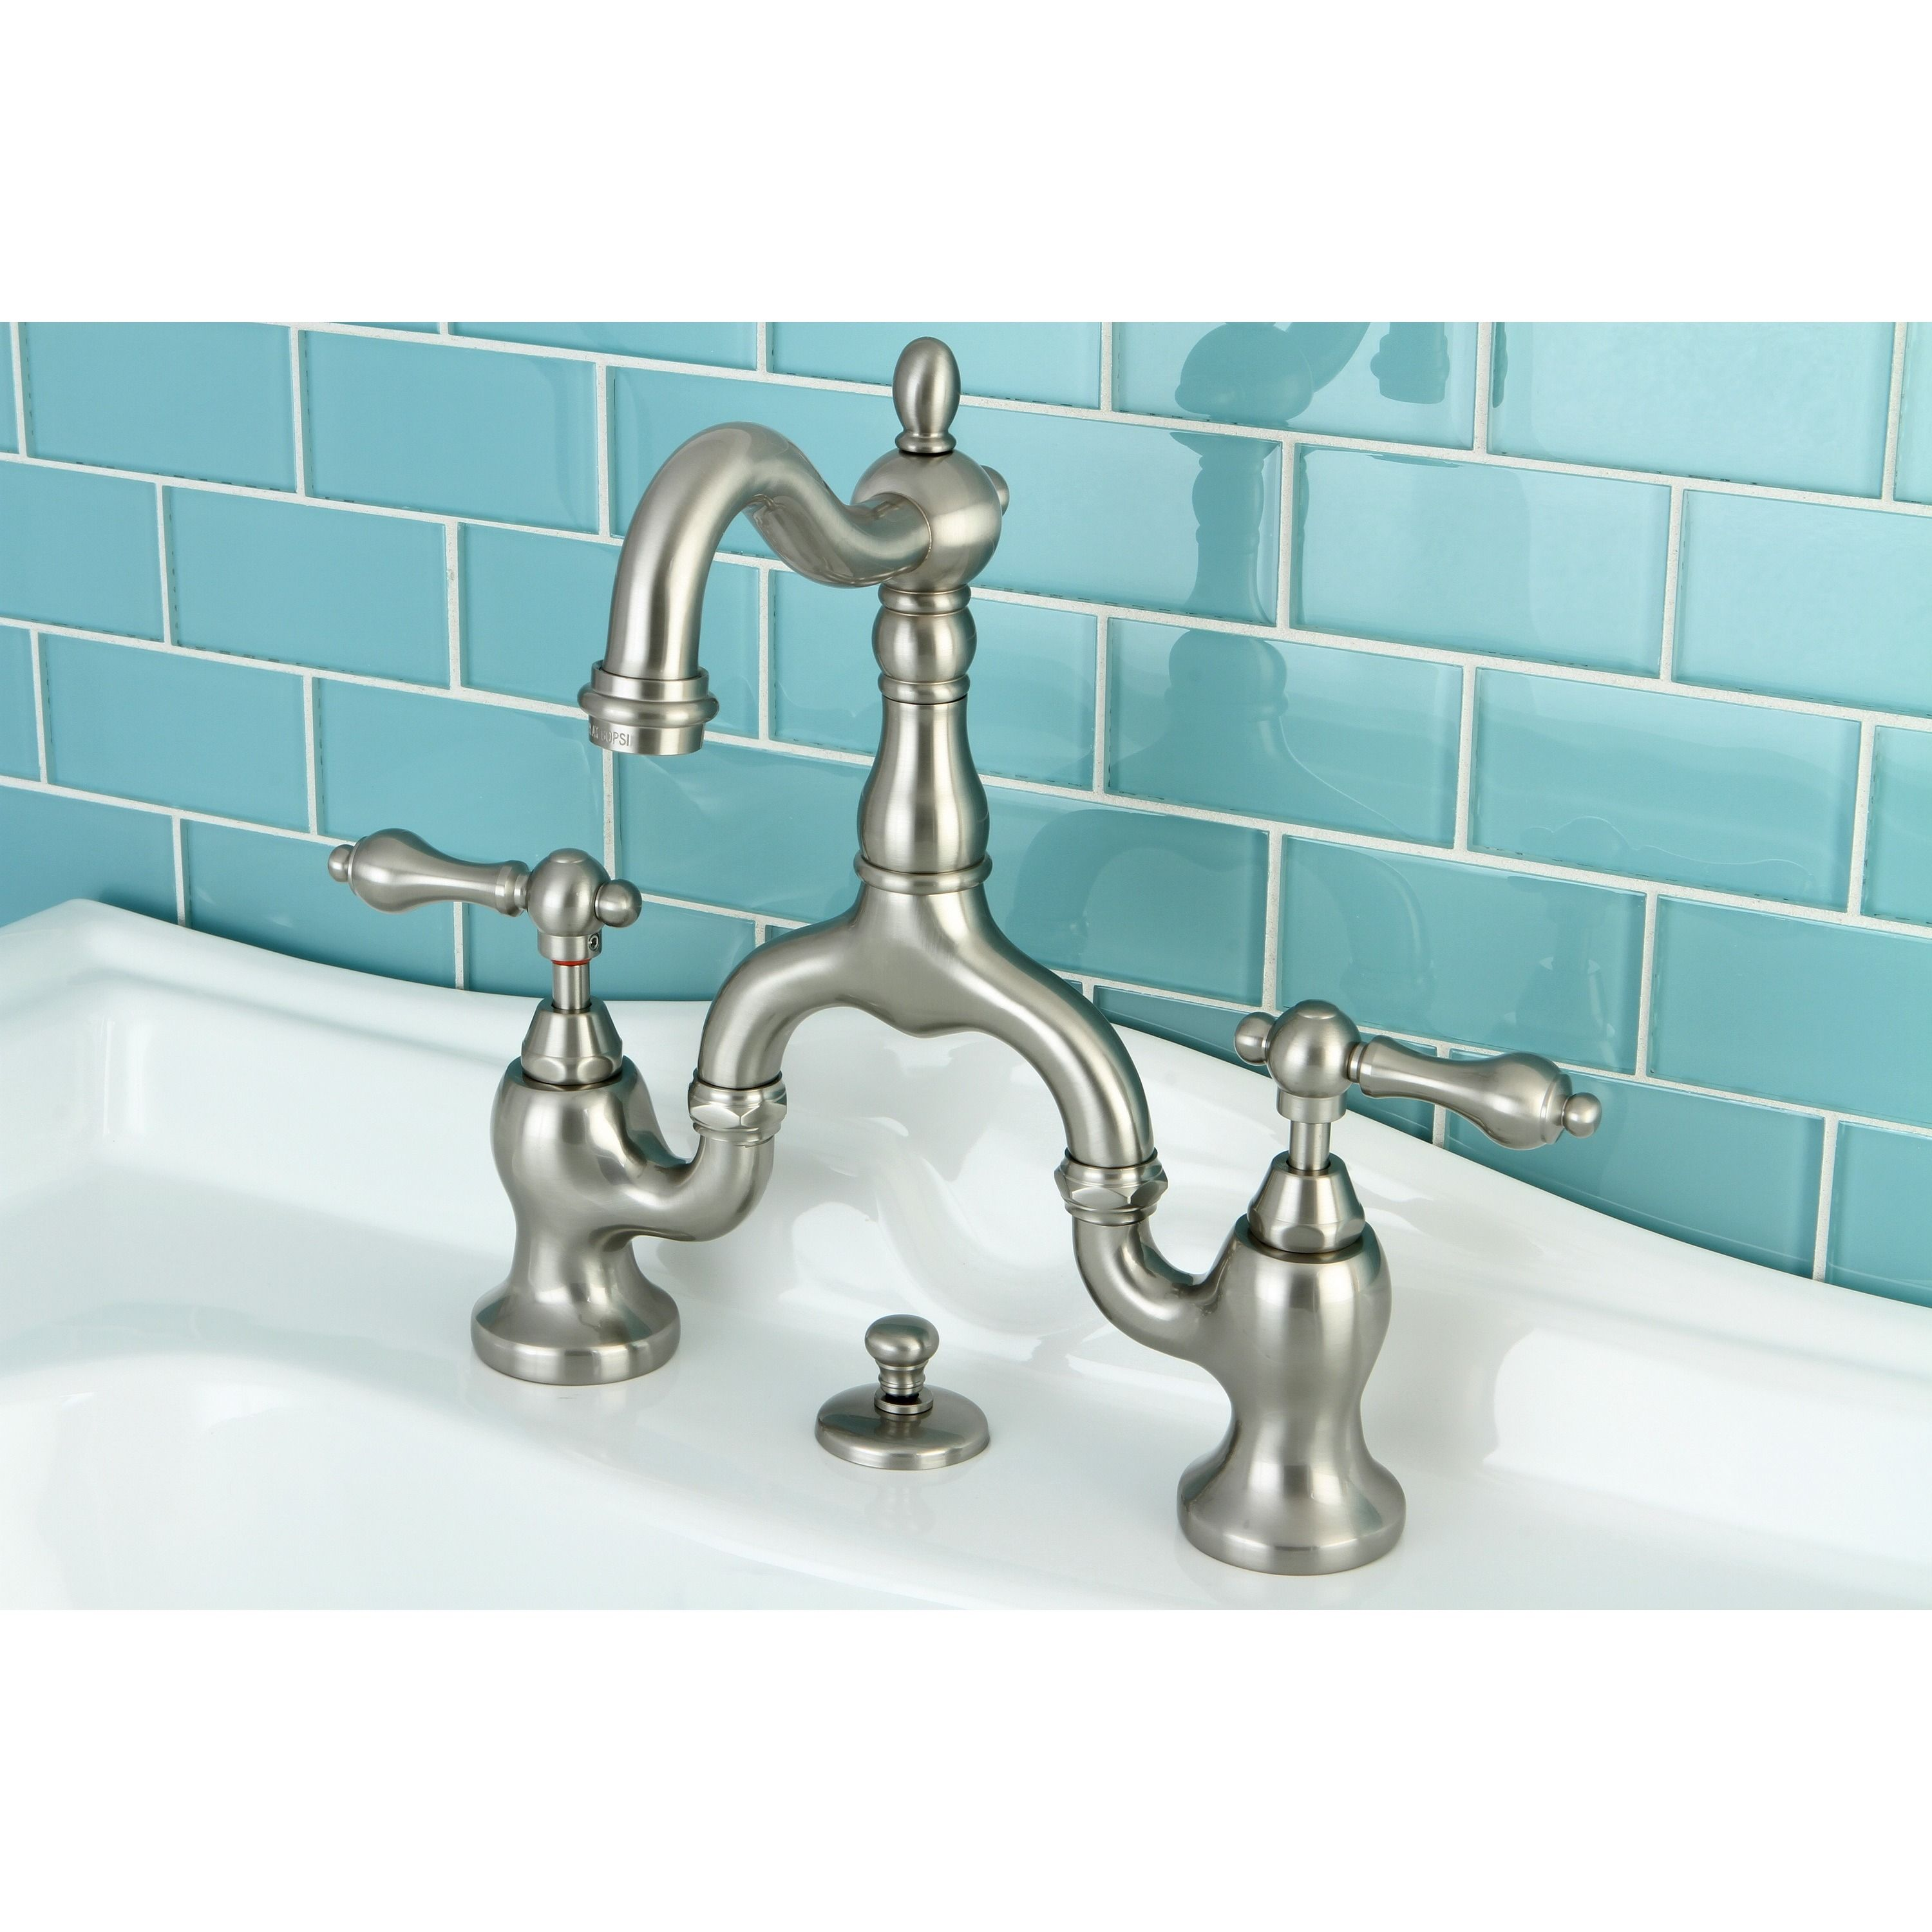 Add lasting beauty and charm to your bathroom decor with this ...